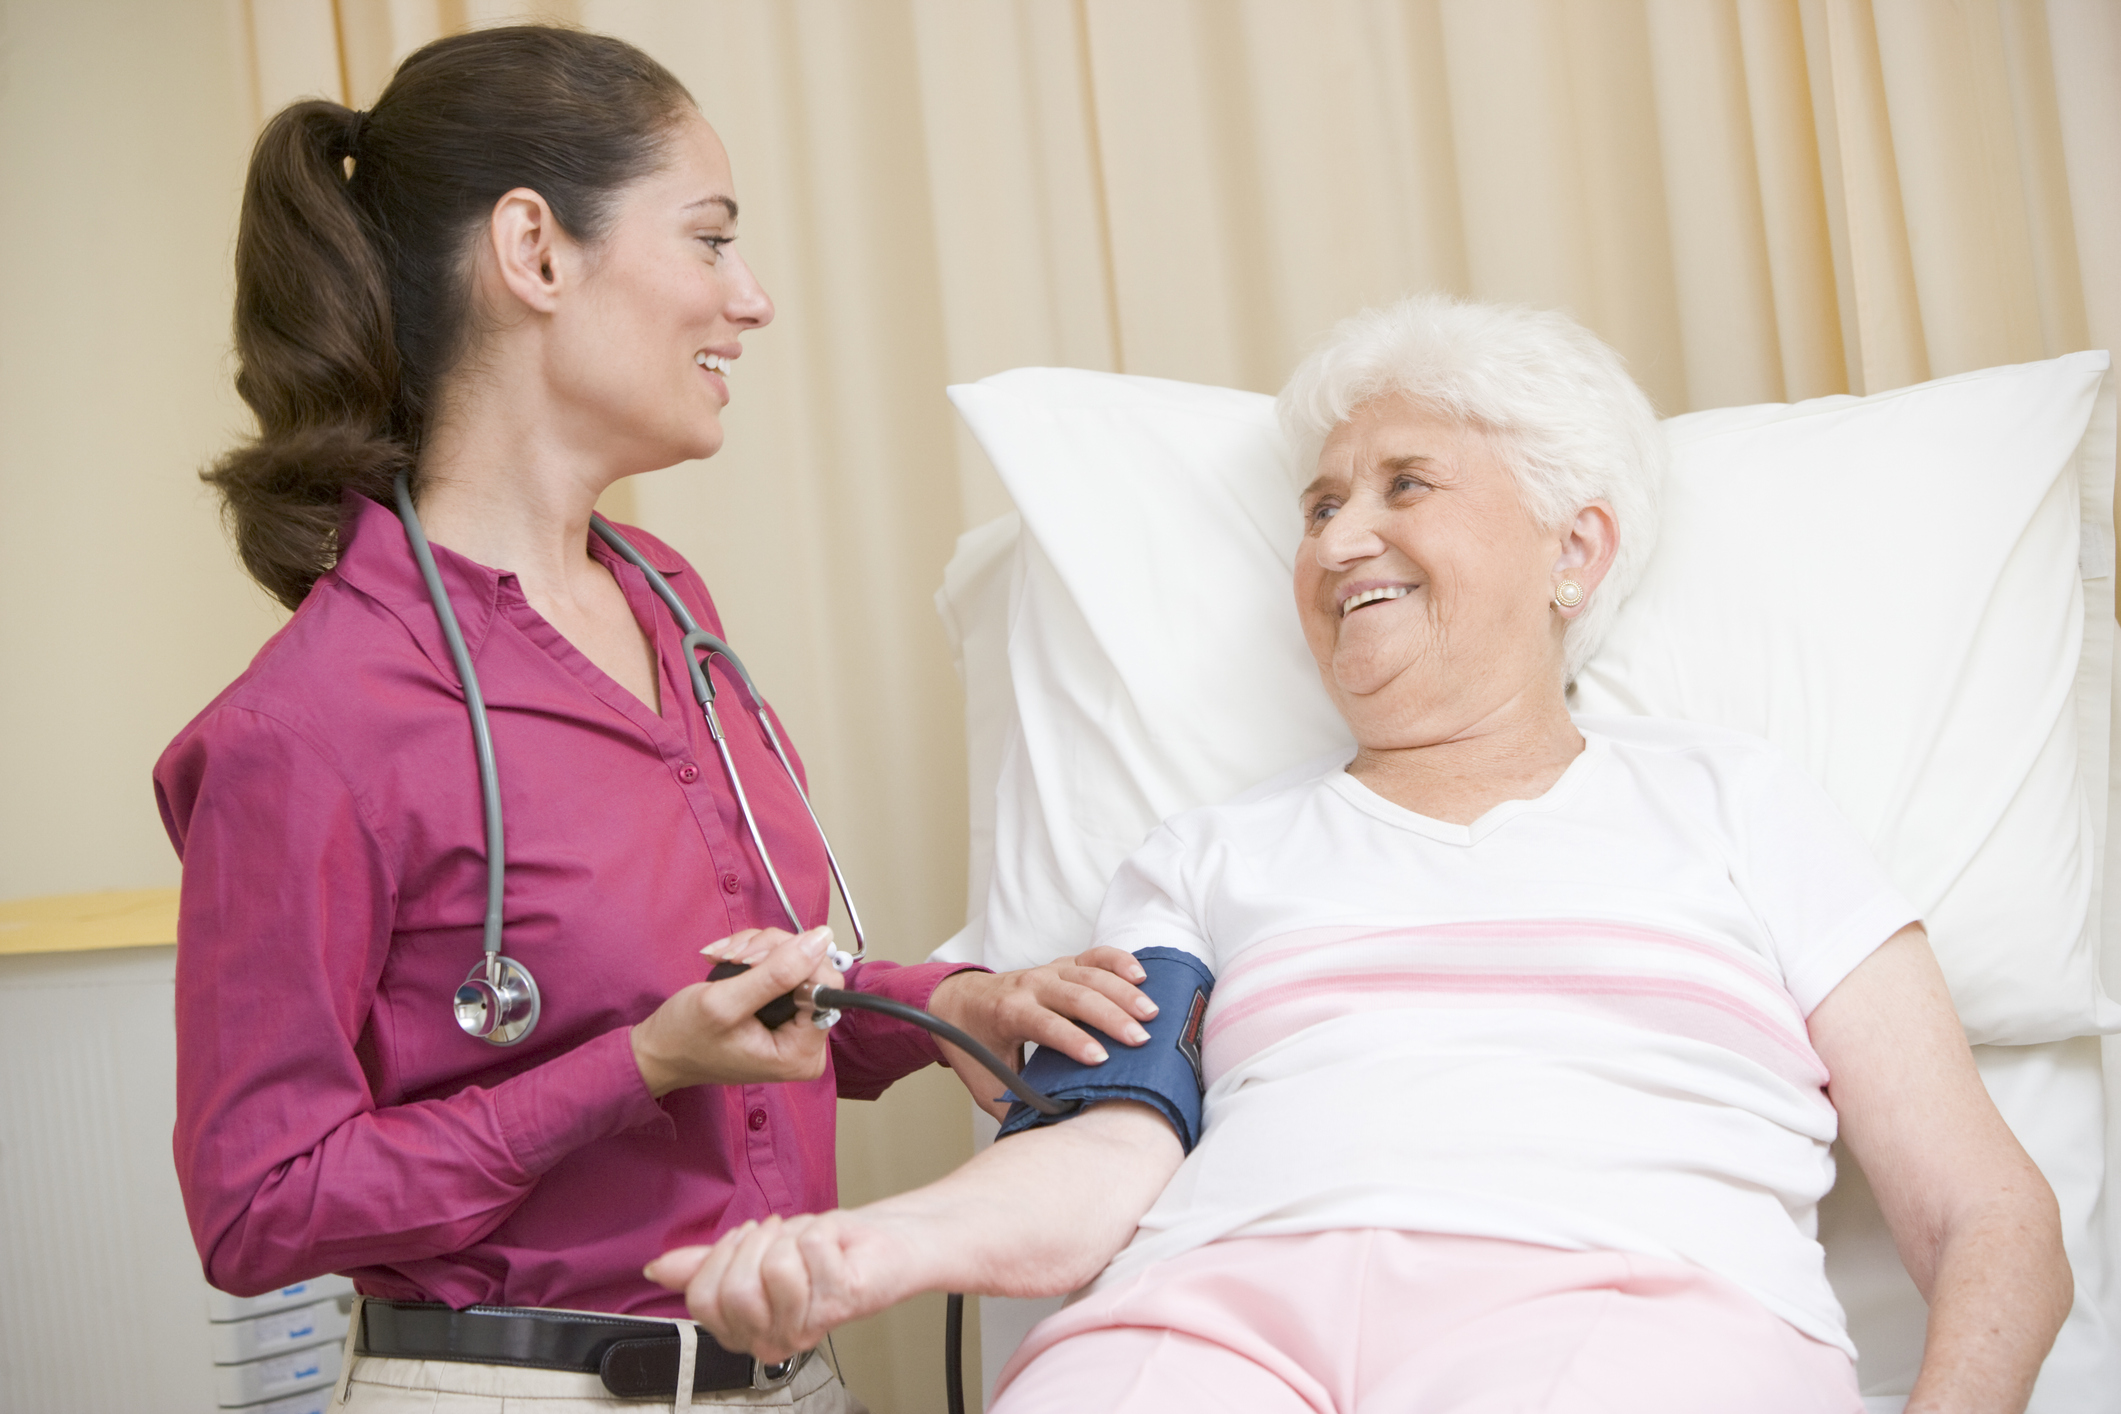 high resting rate and blood pressure